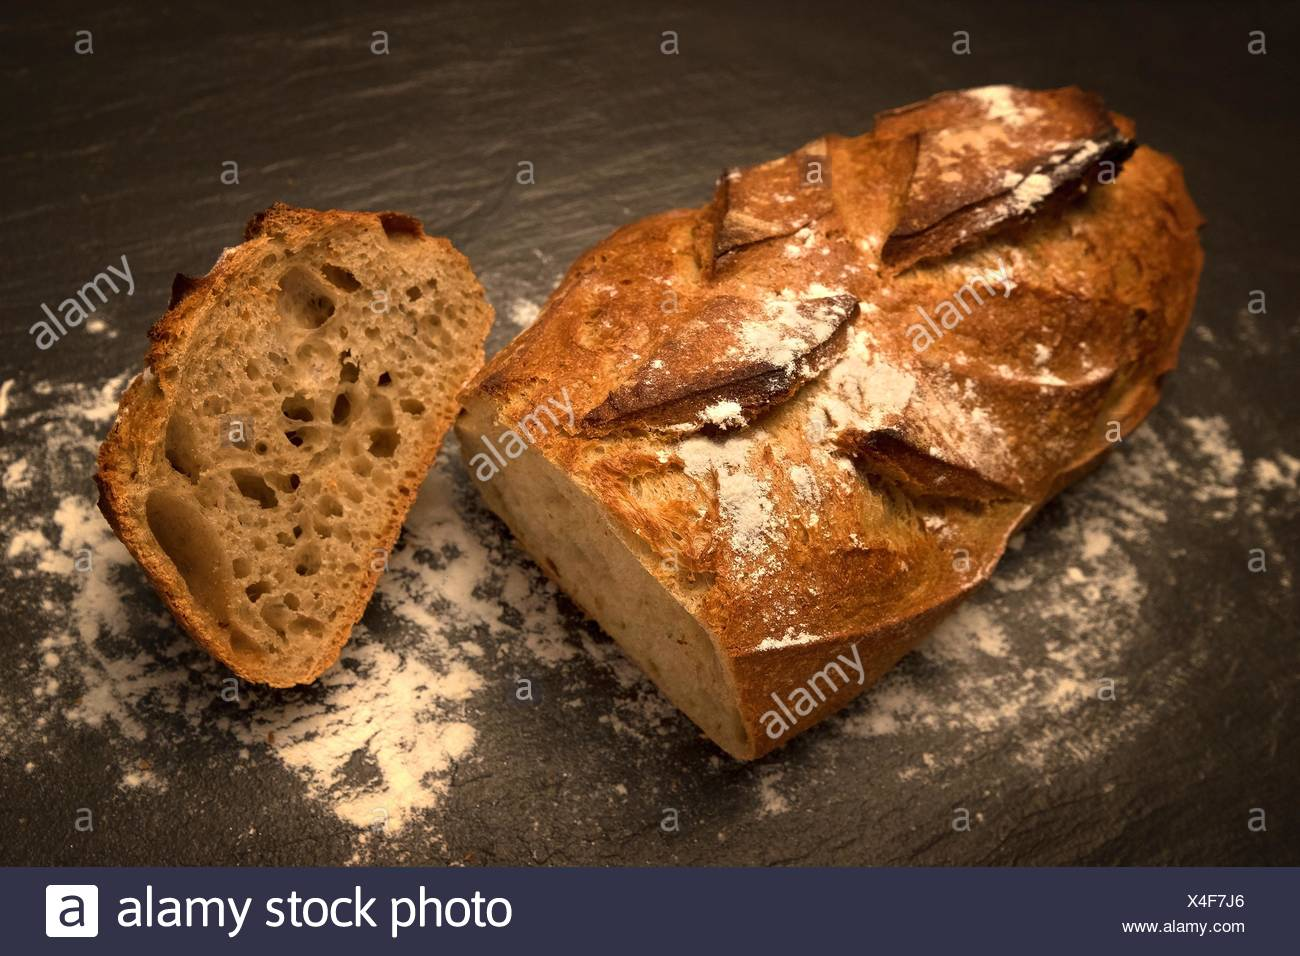 Loaf of bread with a slice - Stock Image